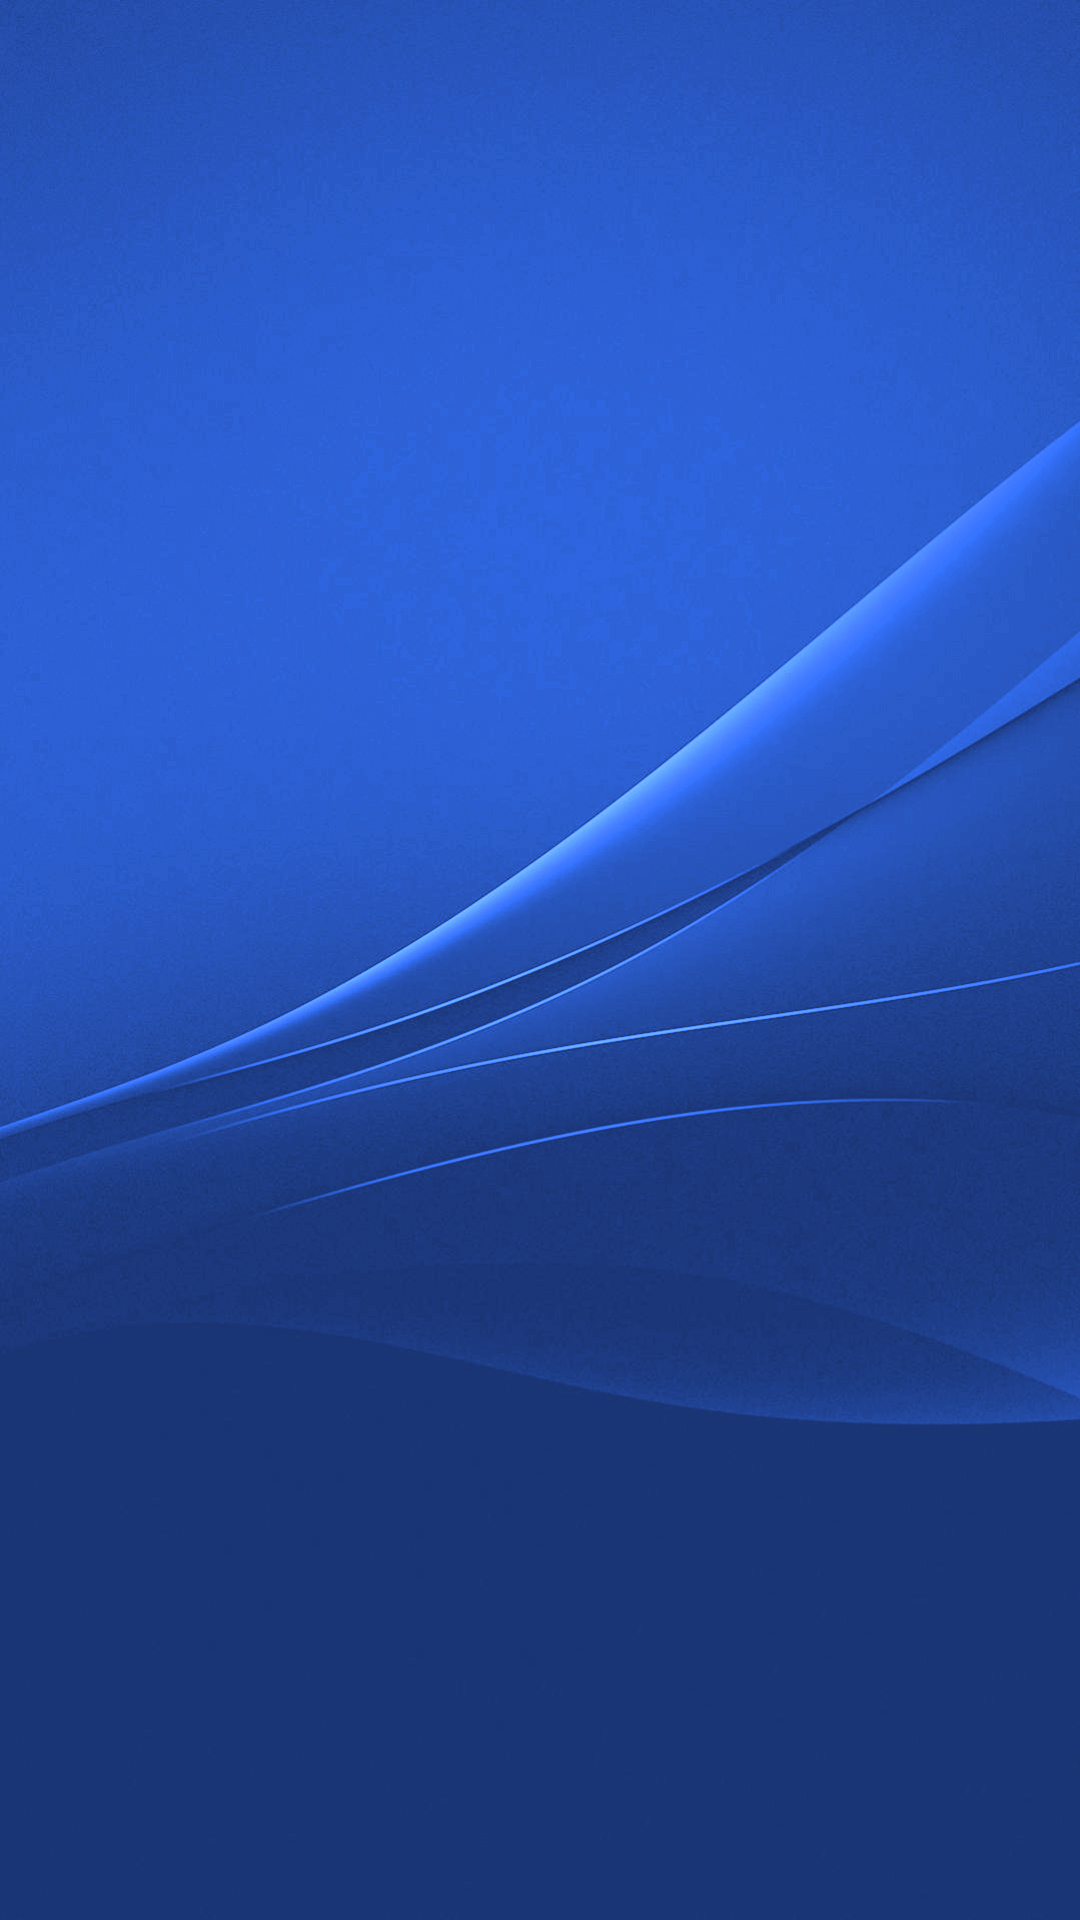 Blue xperia lollipop experience flow wallpaper gizmo for Wallpaper xperia home